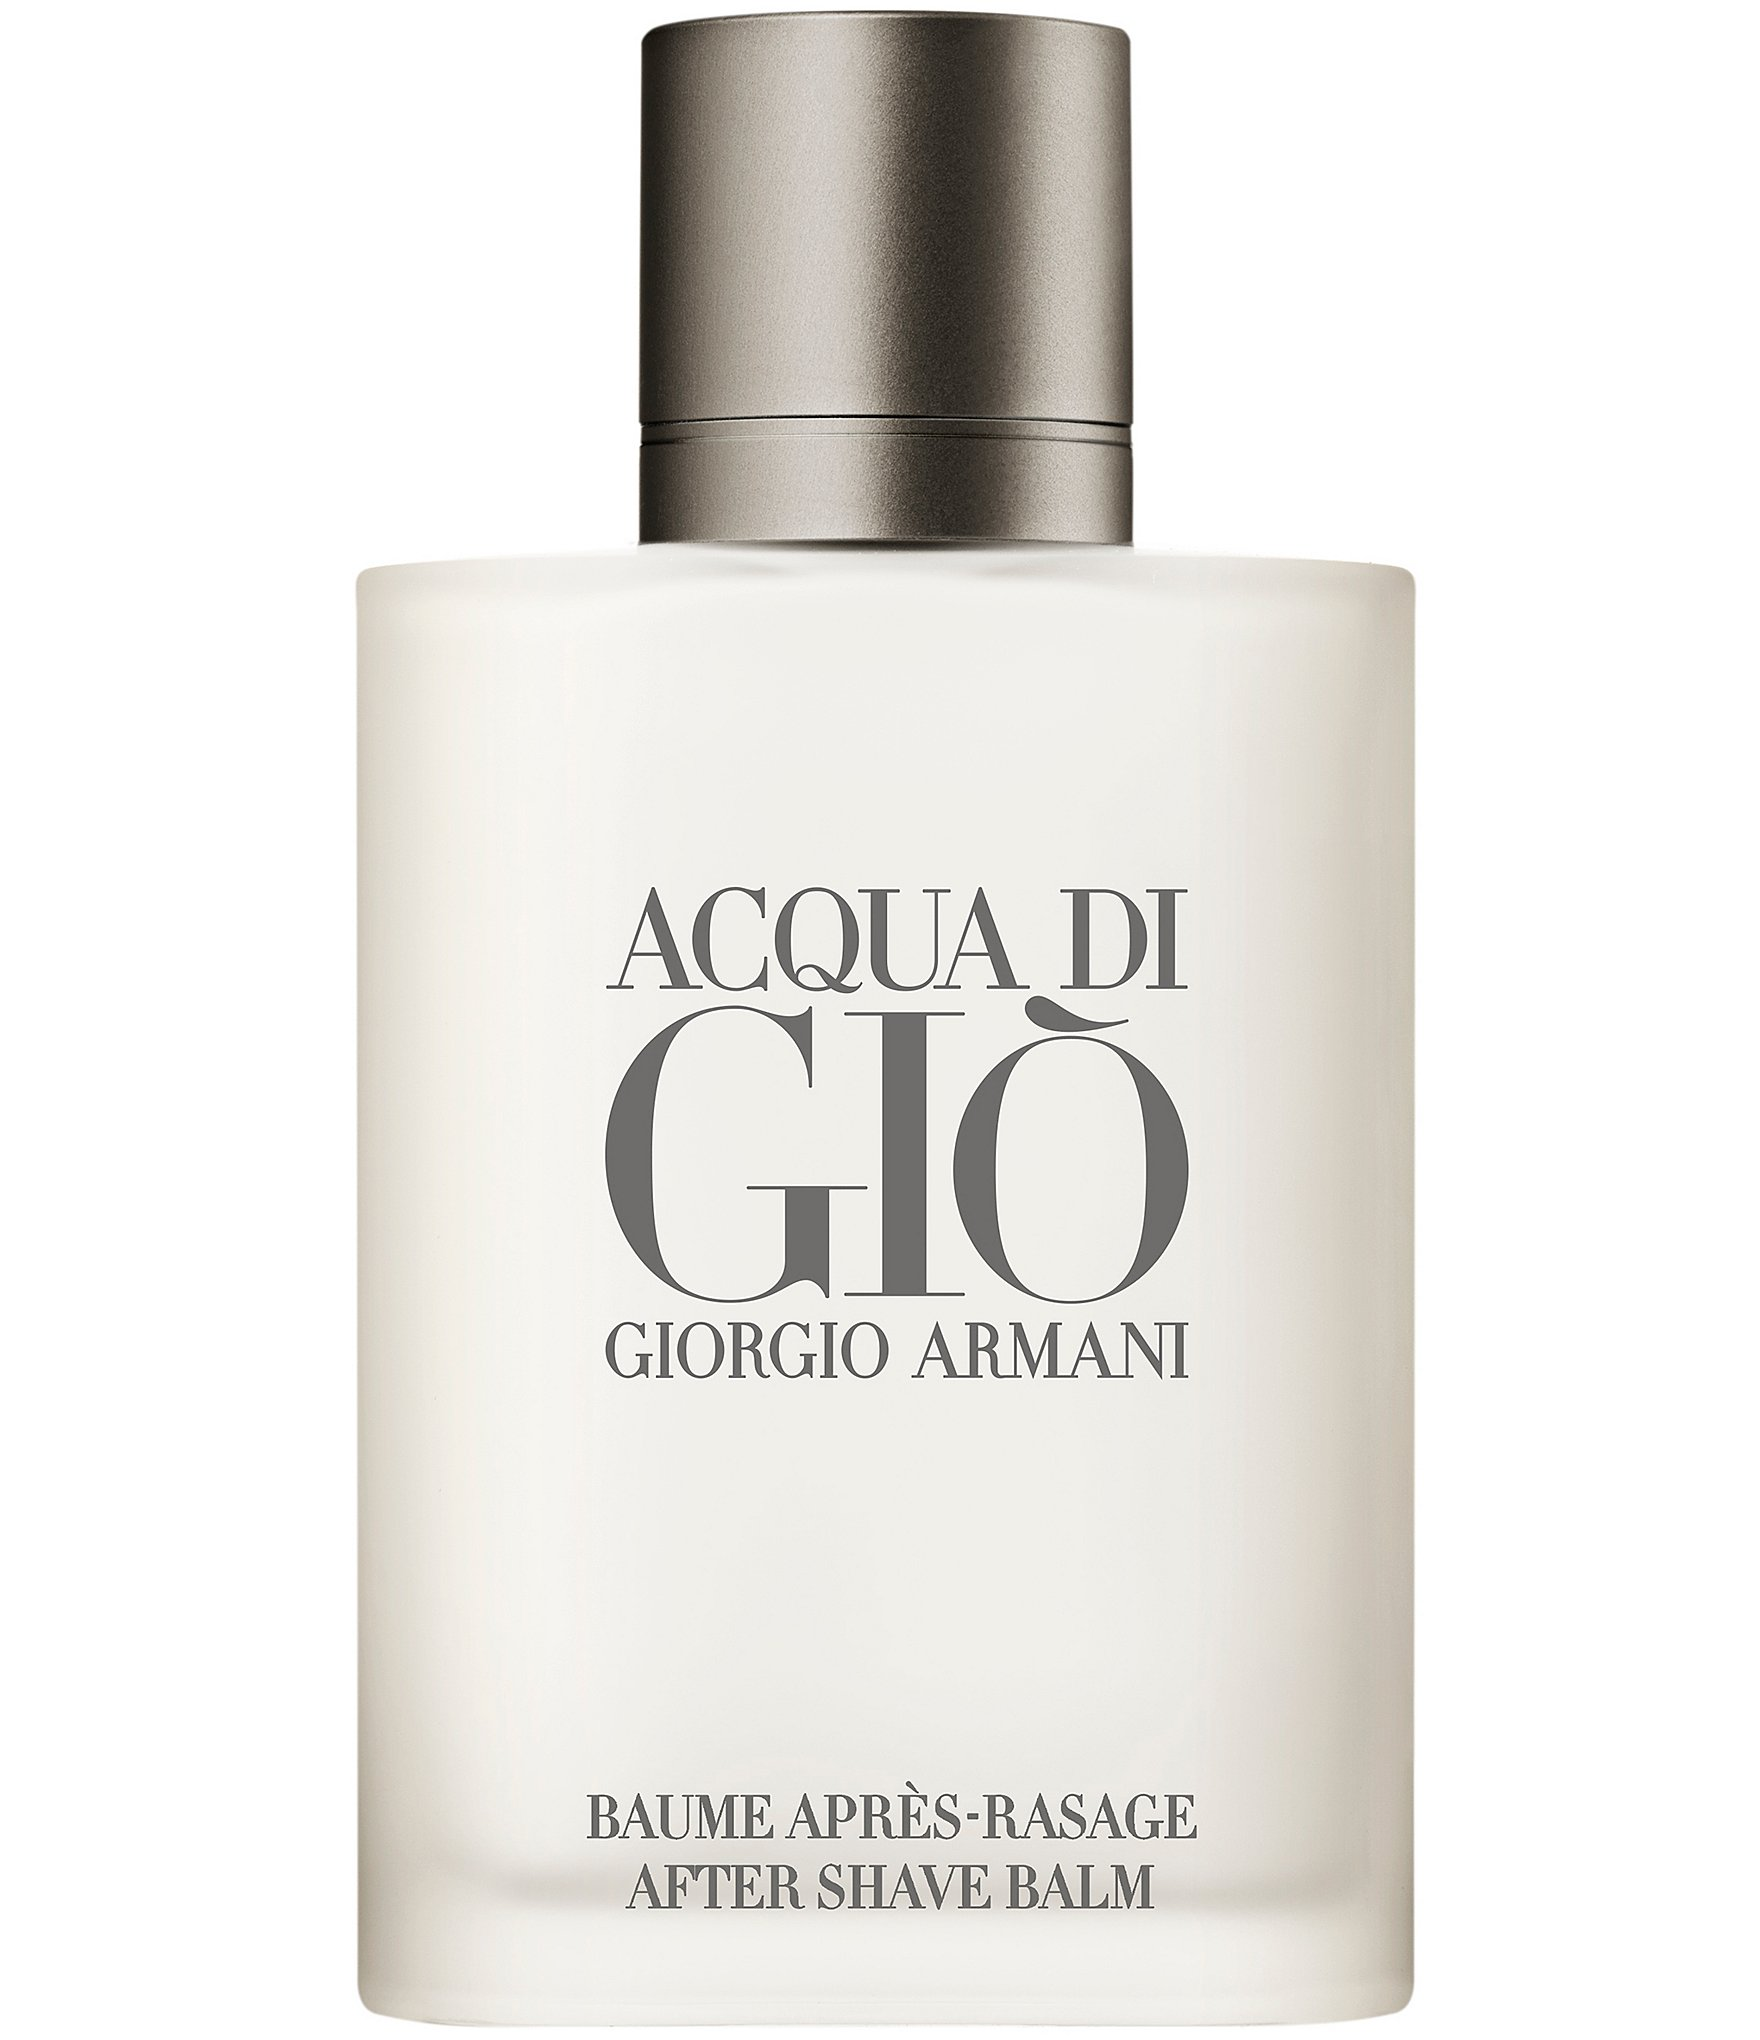 giorgio armani acqua di gio pour homme after shave balm. Black Bedroom Furniture Sets. Home Design Ideas